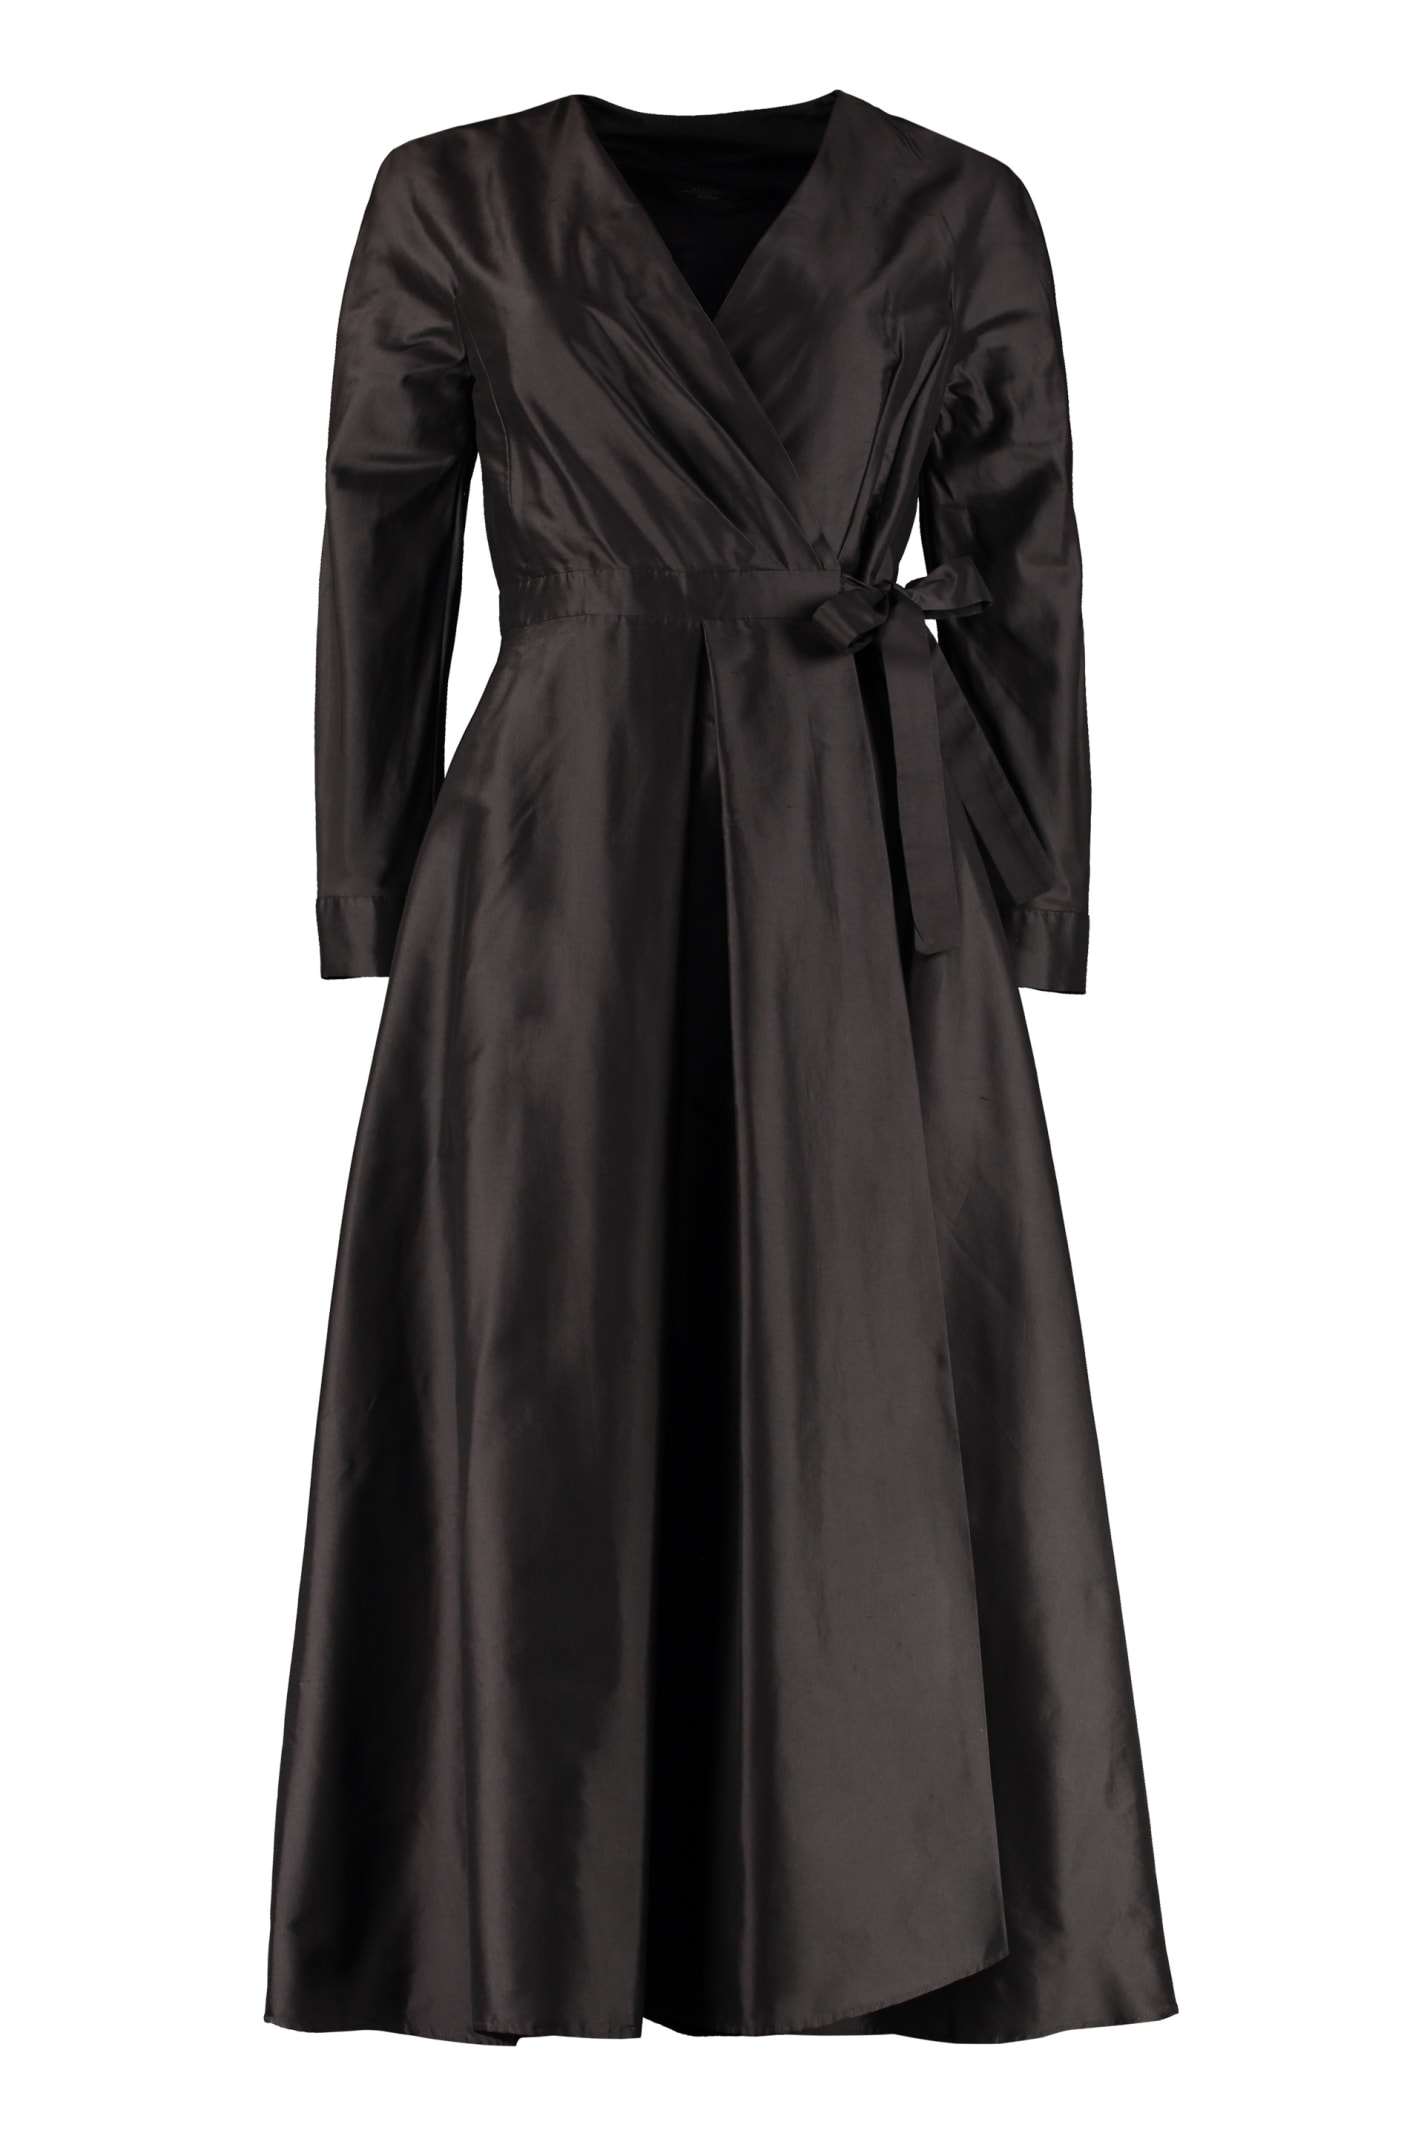 Buy Weekend Max Mara Silk Shantung Dress online, shop Weekend Max Mara with free shipping